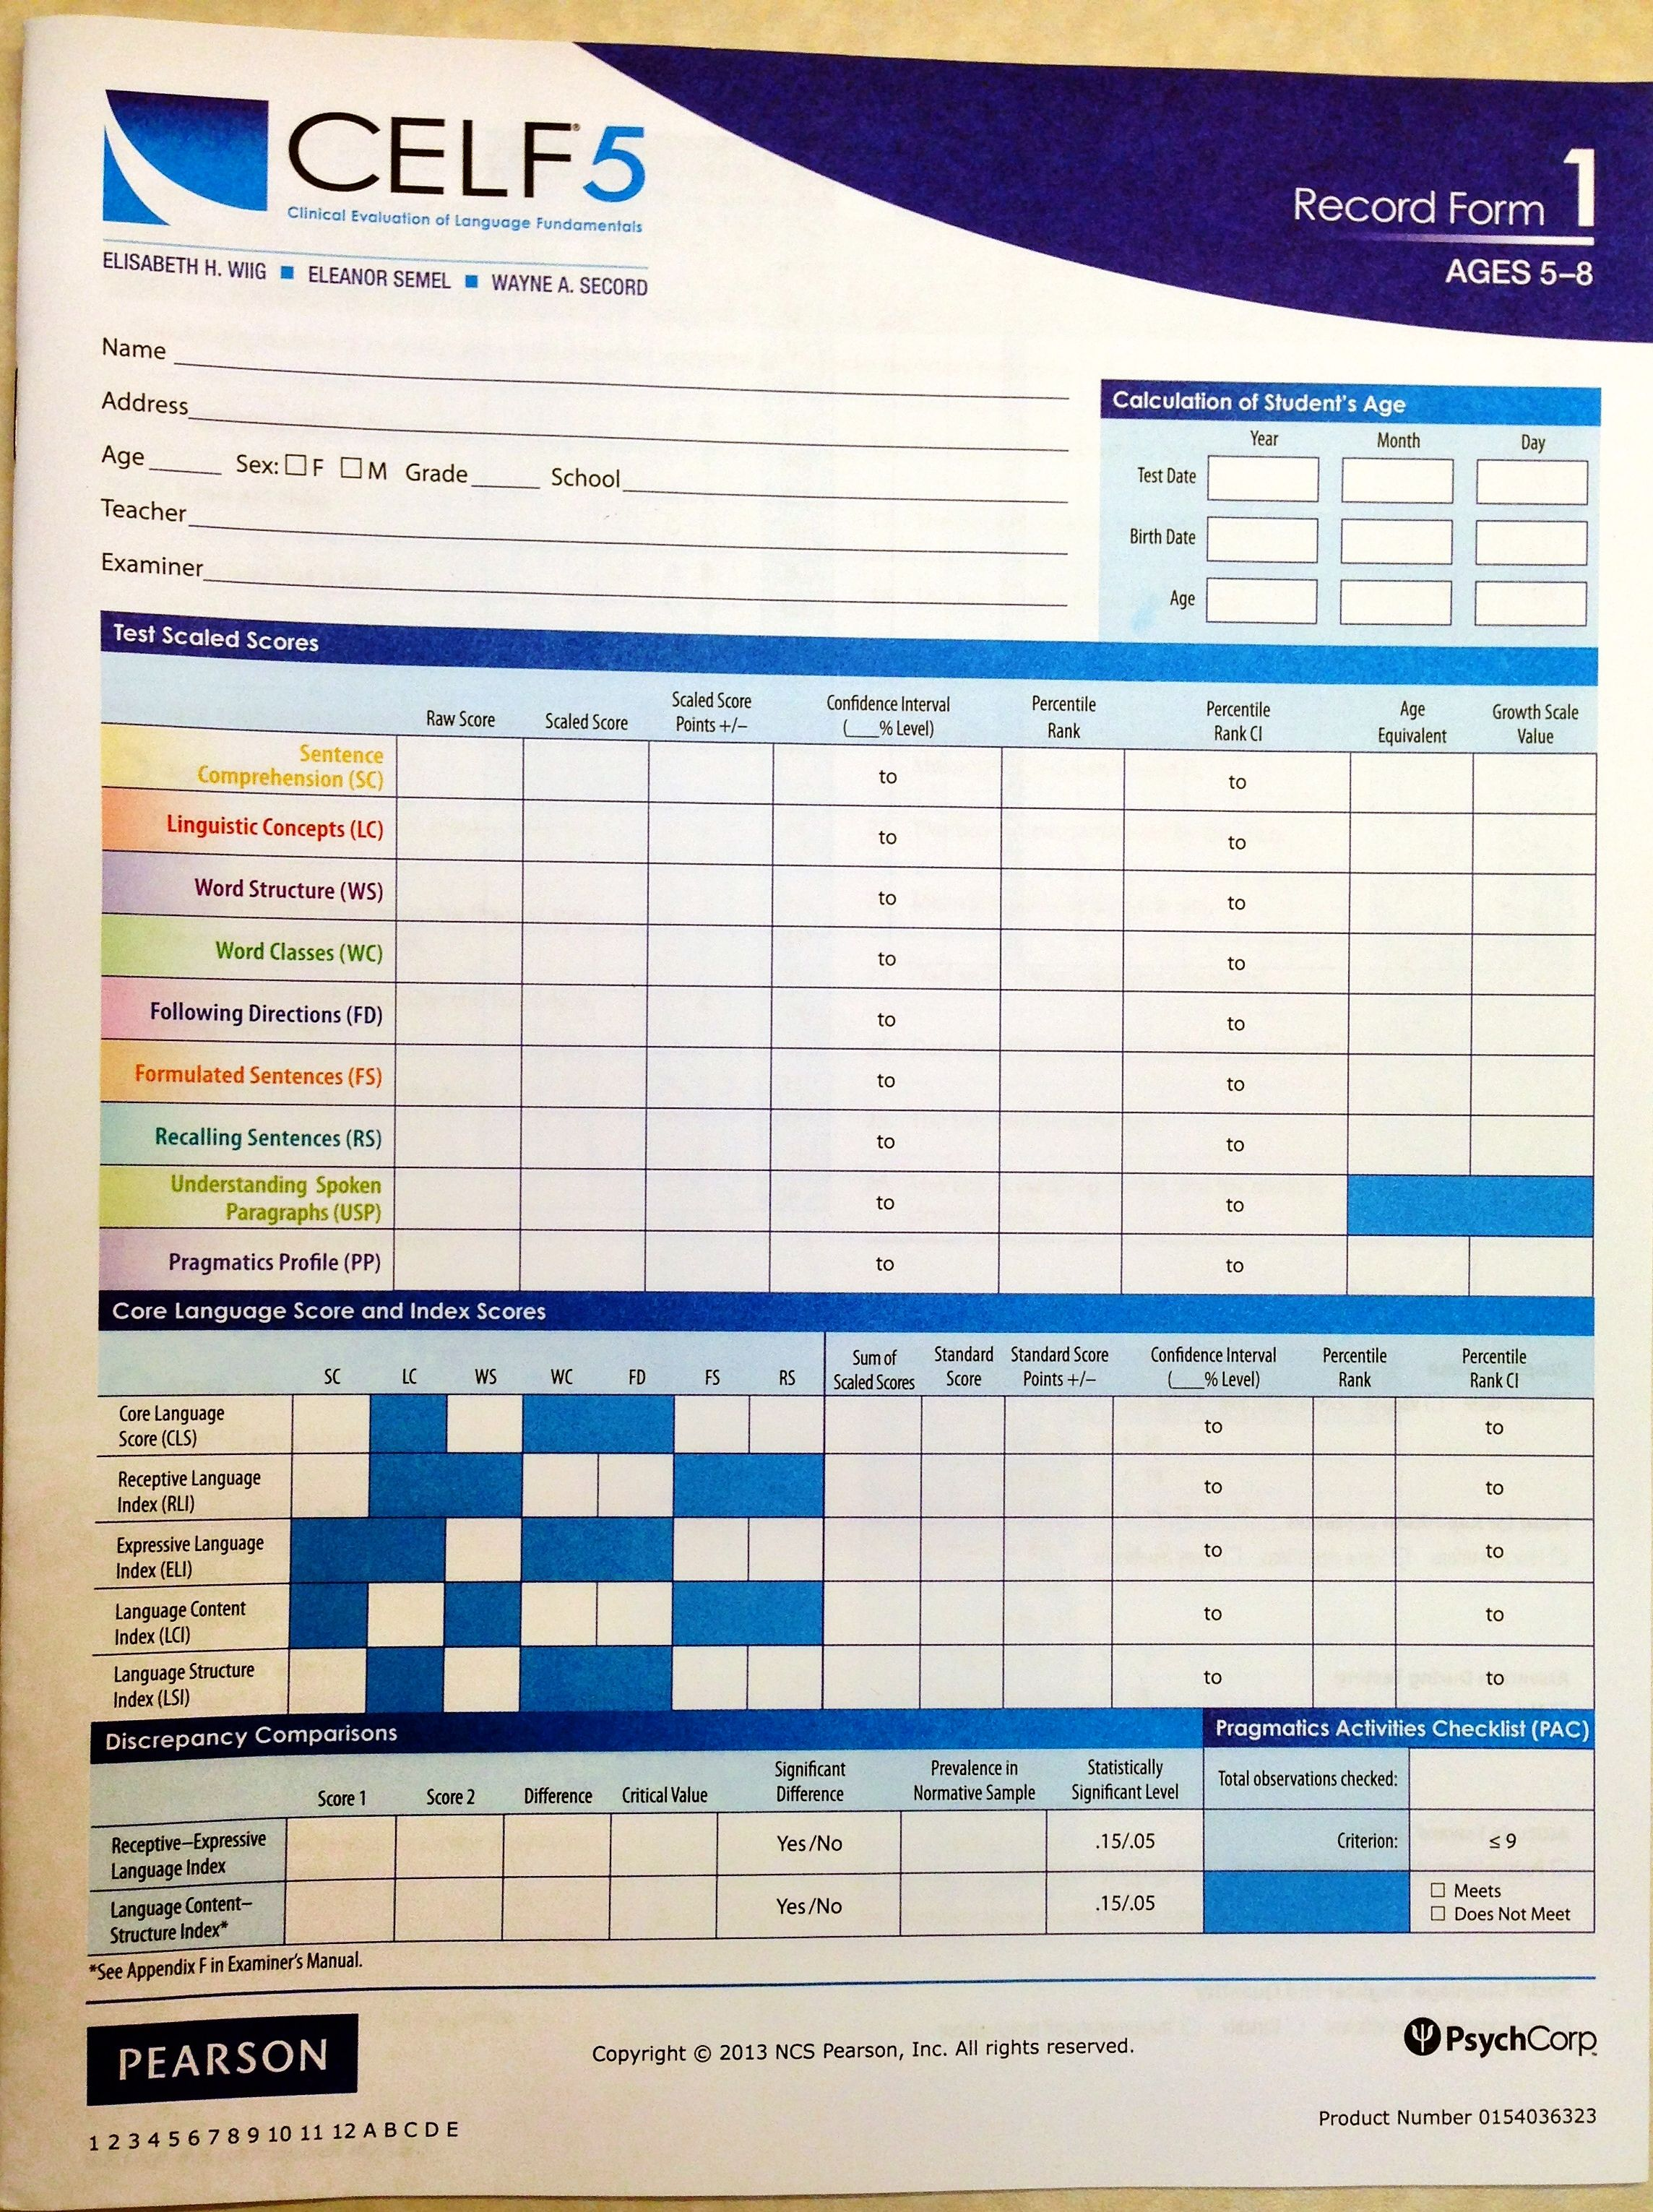 Day 1 here is the new record form 1 for the celf5